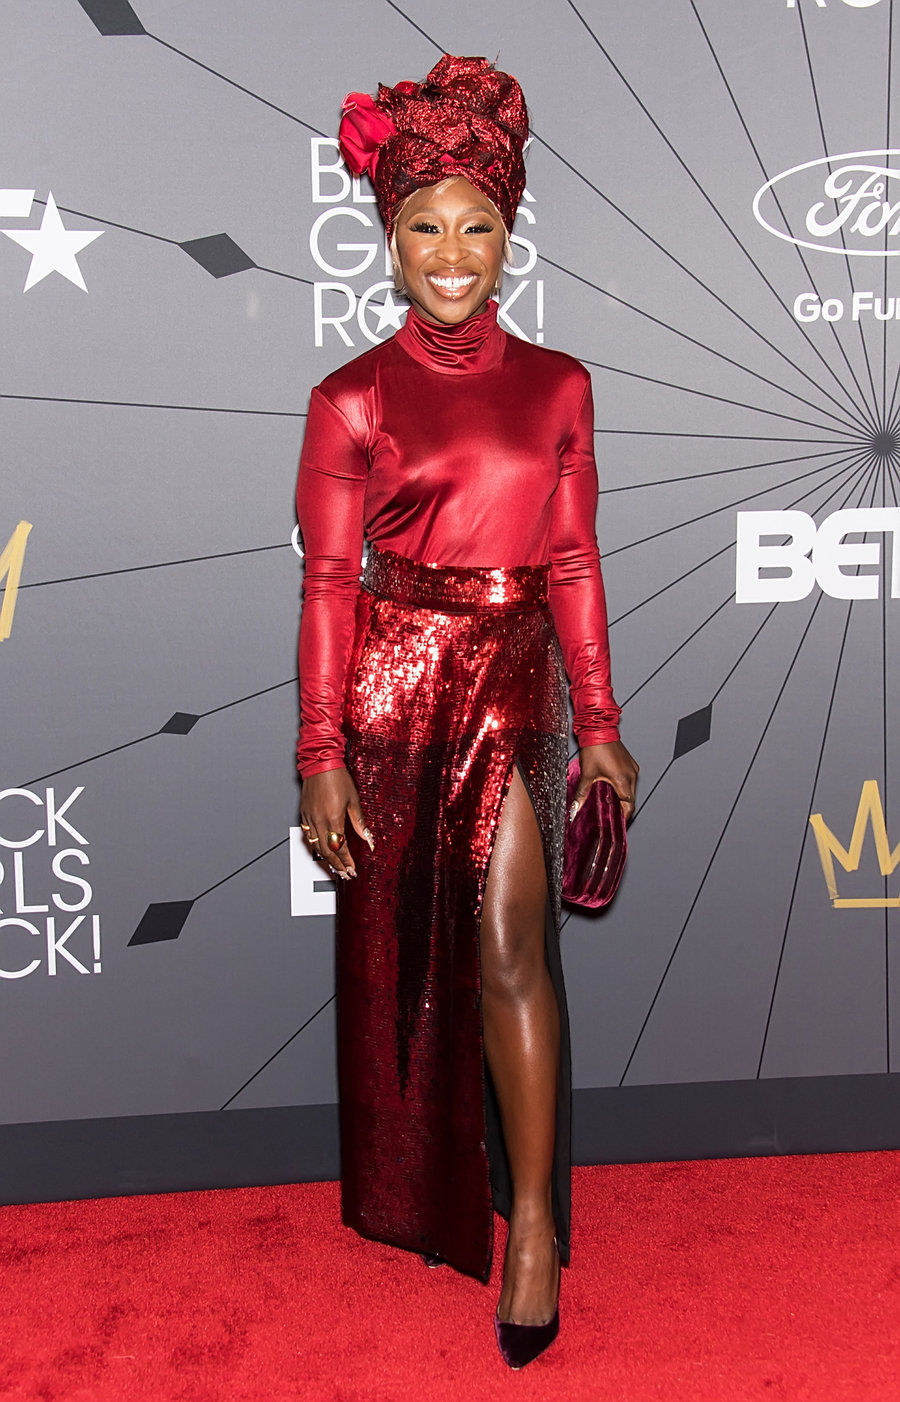 cynthia-erivo-black-girls-rock-red-carpet-2018-billboard-1240